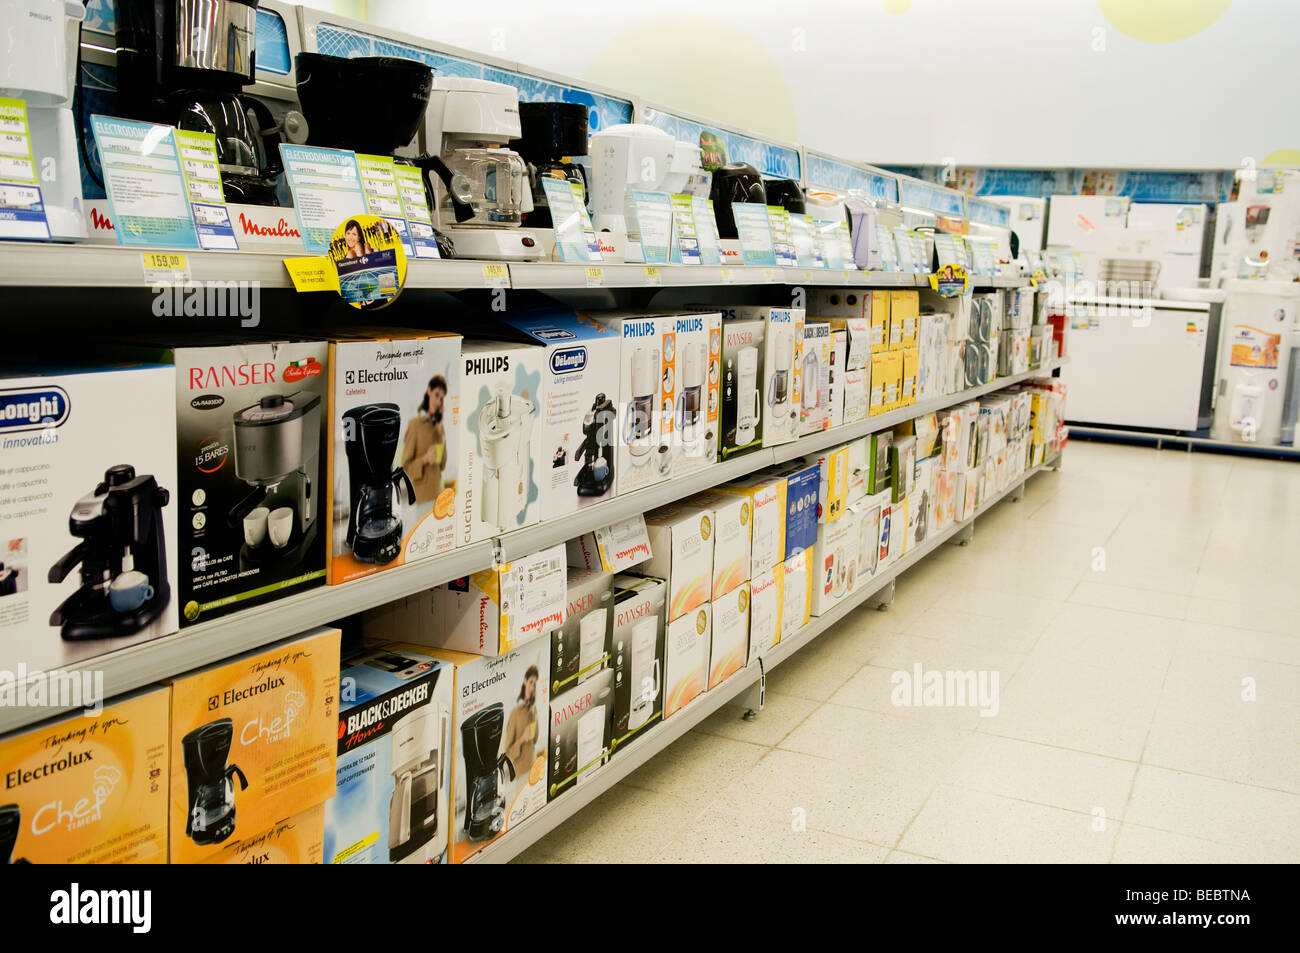 The Kitchen Appliance Store Kitchen Appliances In A Supermarket Stock Photo Royalty Free